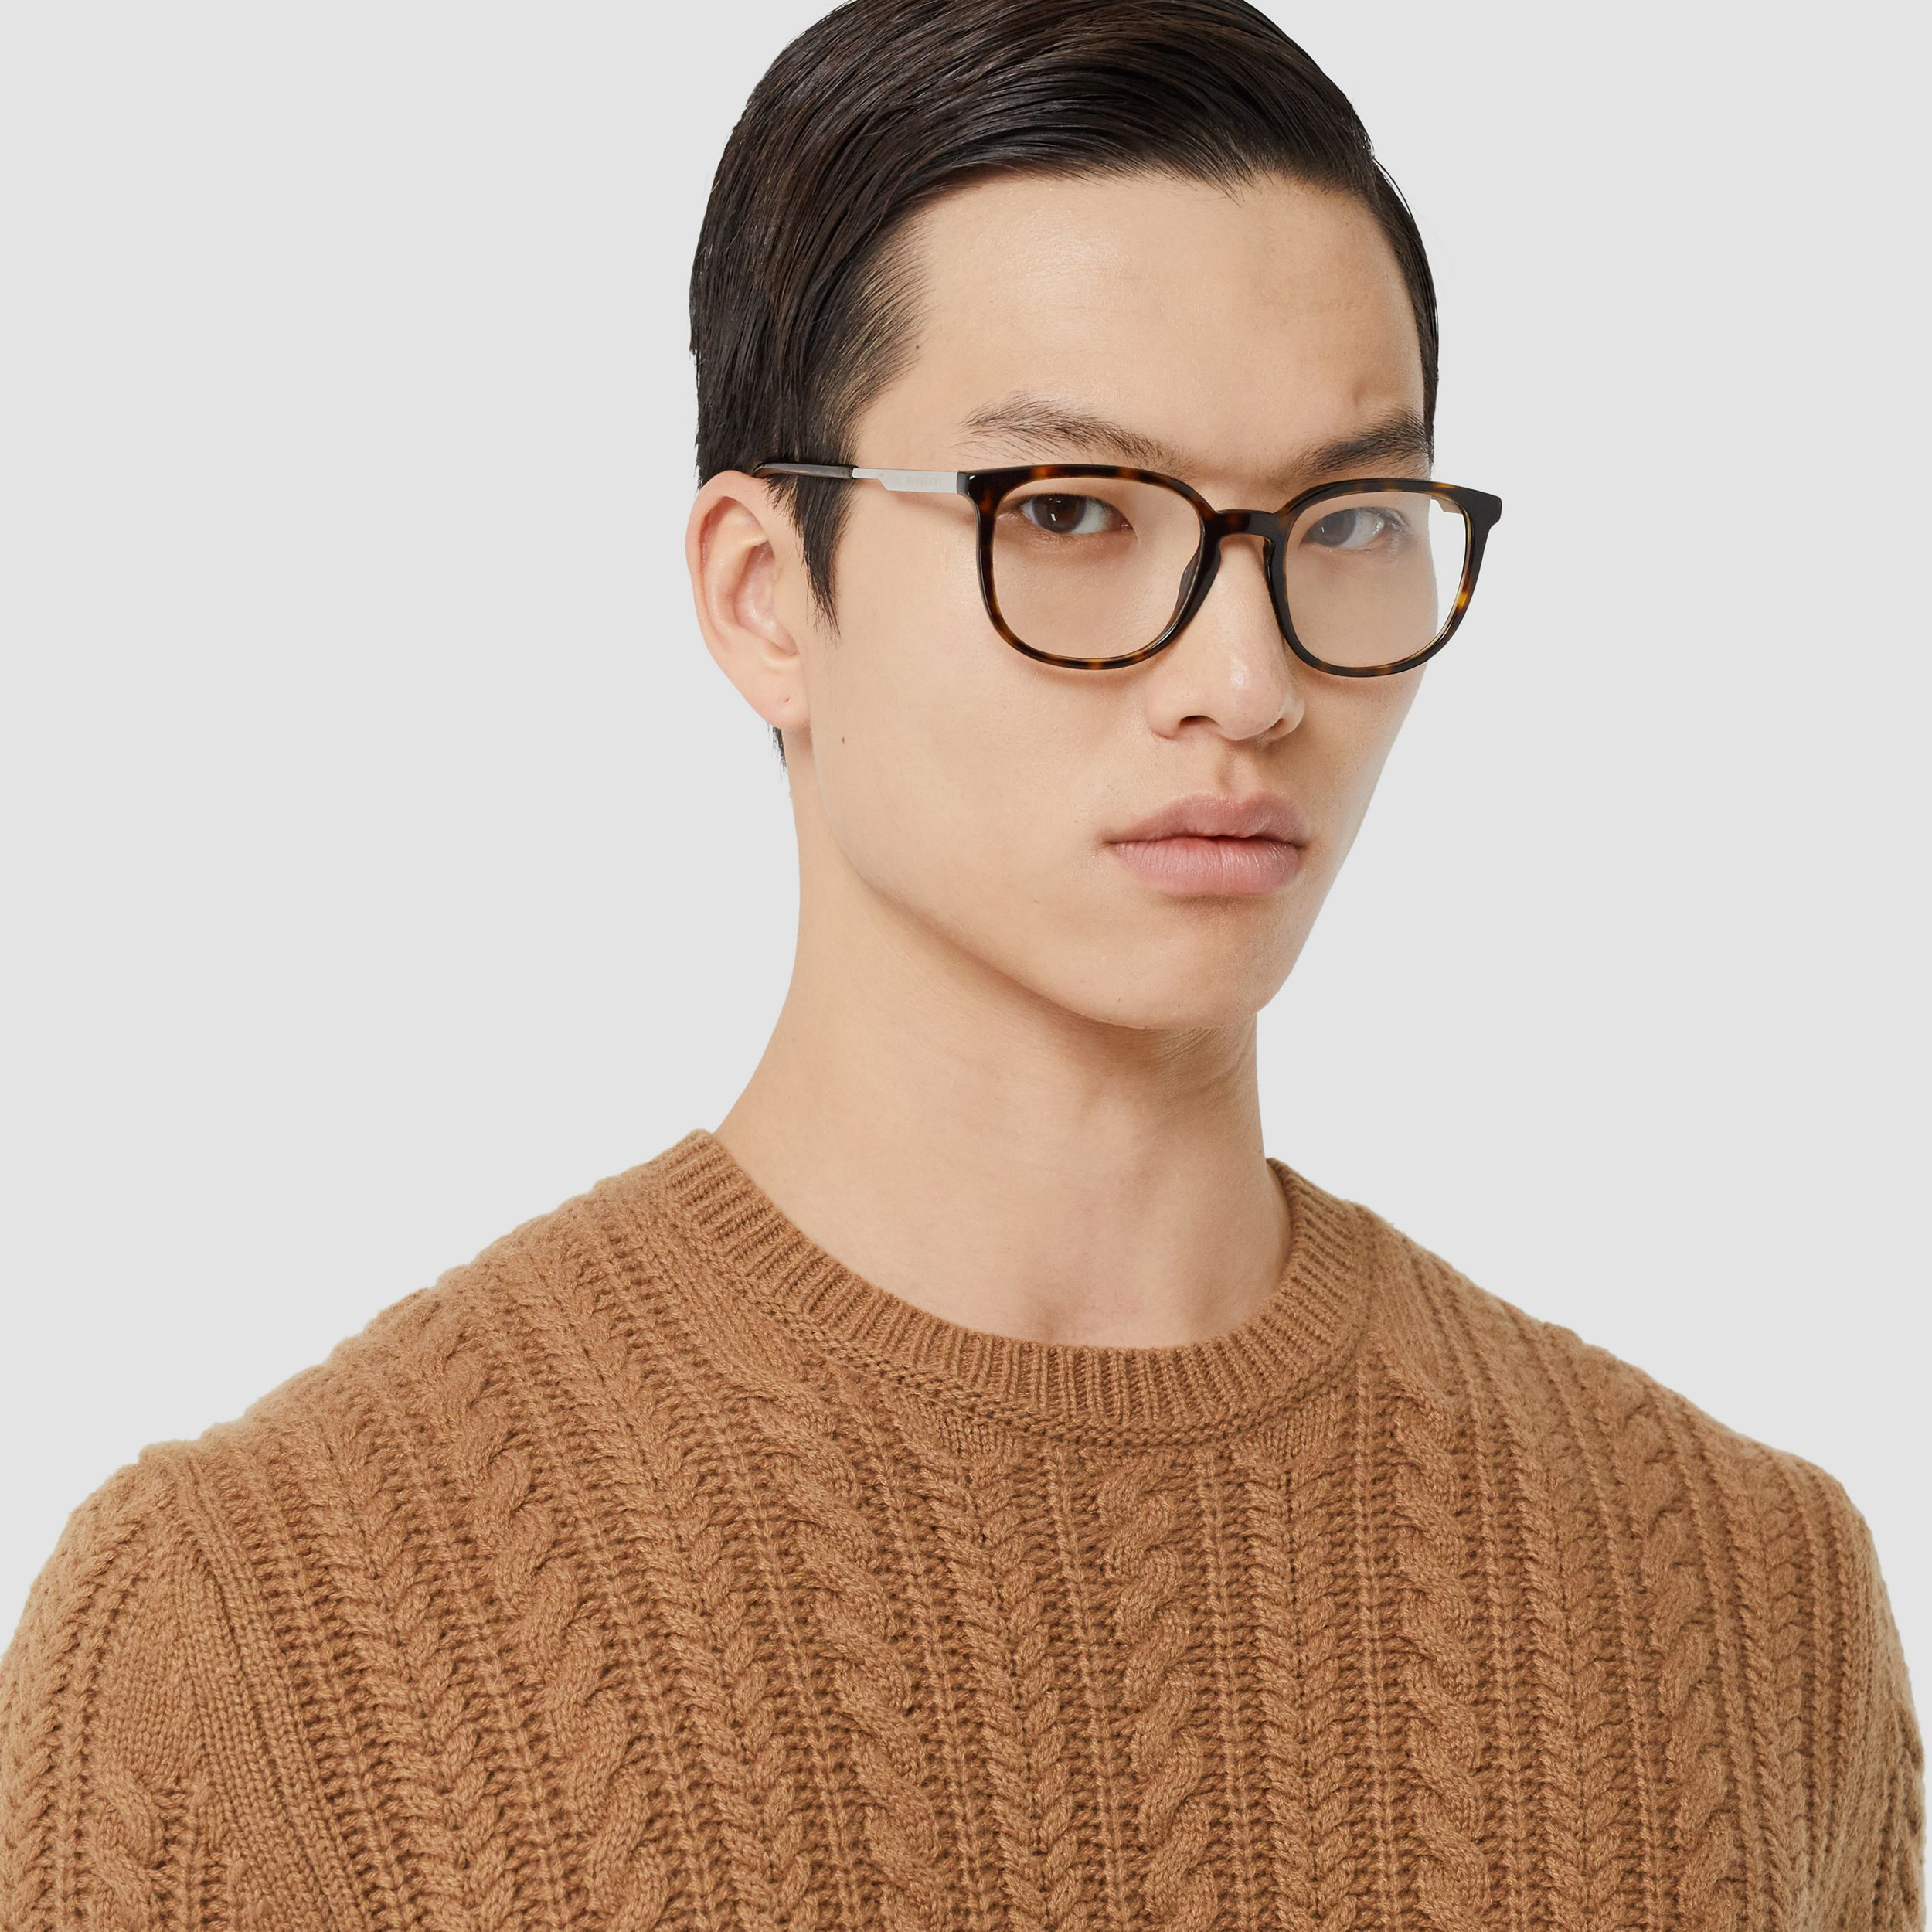 Cable Knit Cashmere Sweater in Maple - Men | Burberry Canada - 2